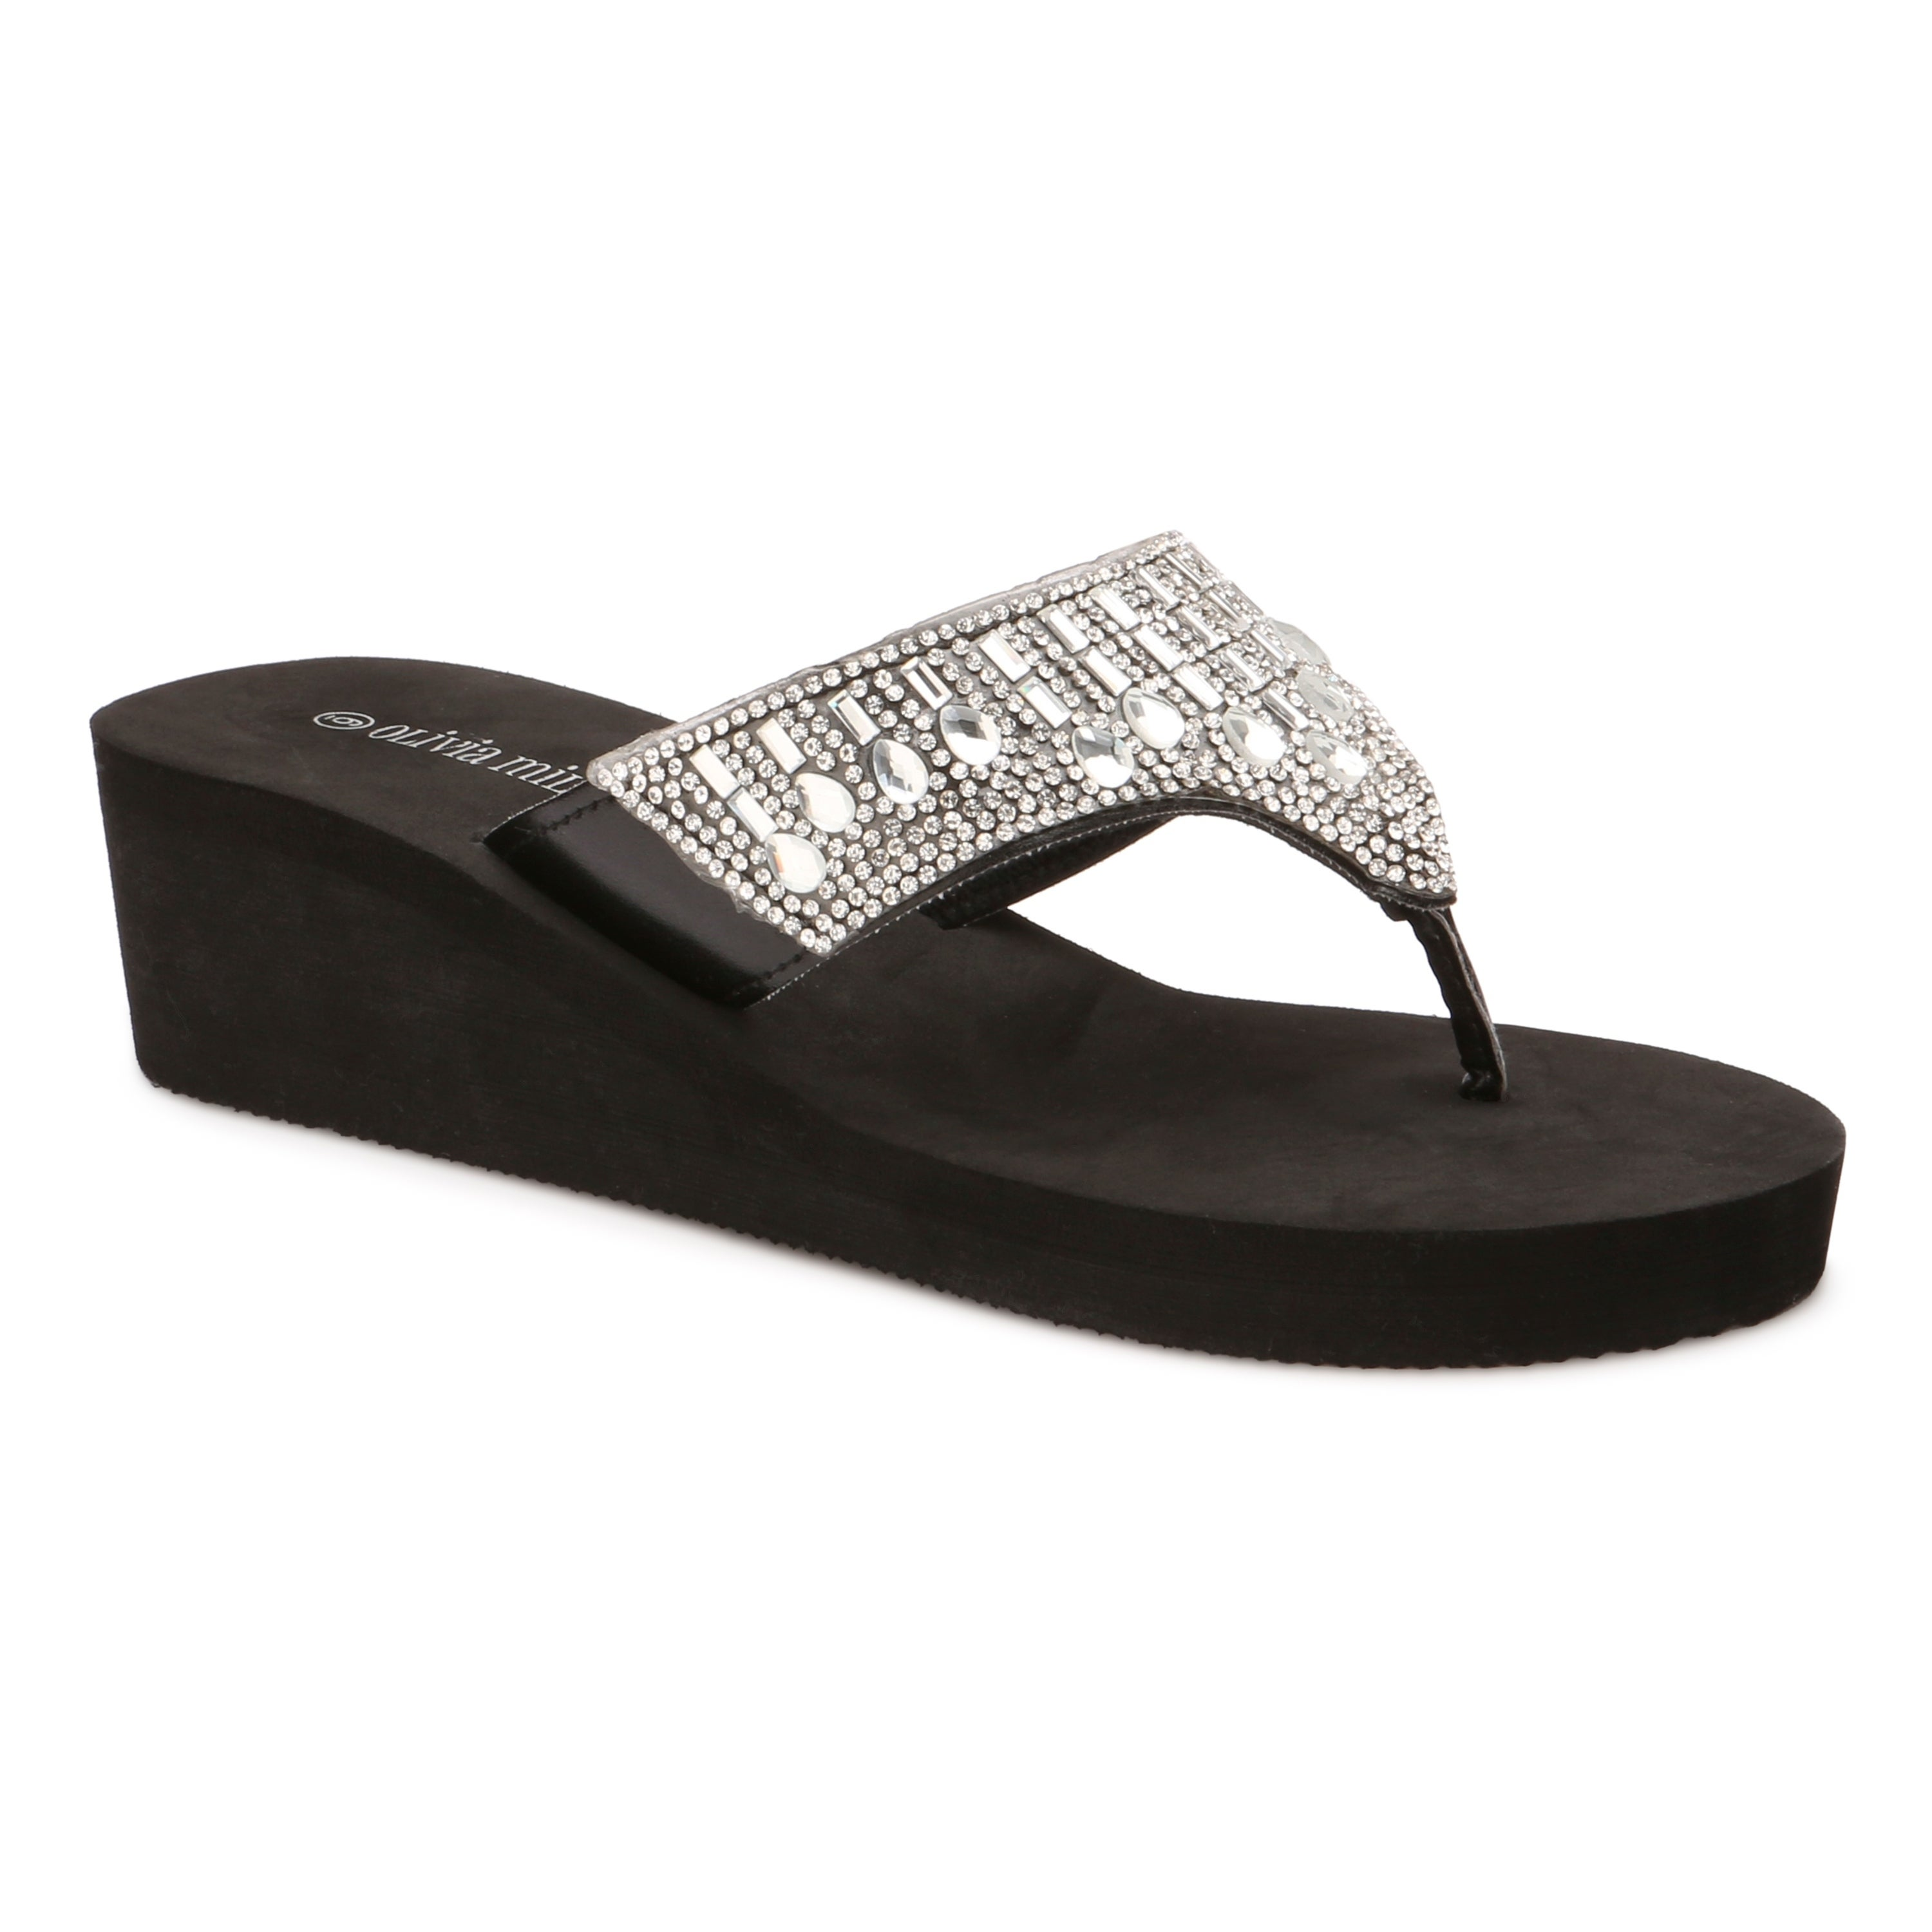 lowest price sale online clearance official site Olivia Miller Pinellas Women's ... Wedge Sandals PsPscrd